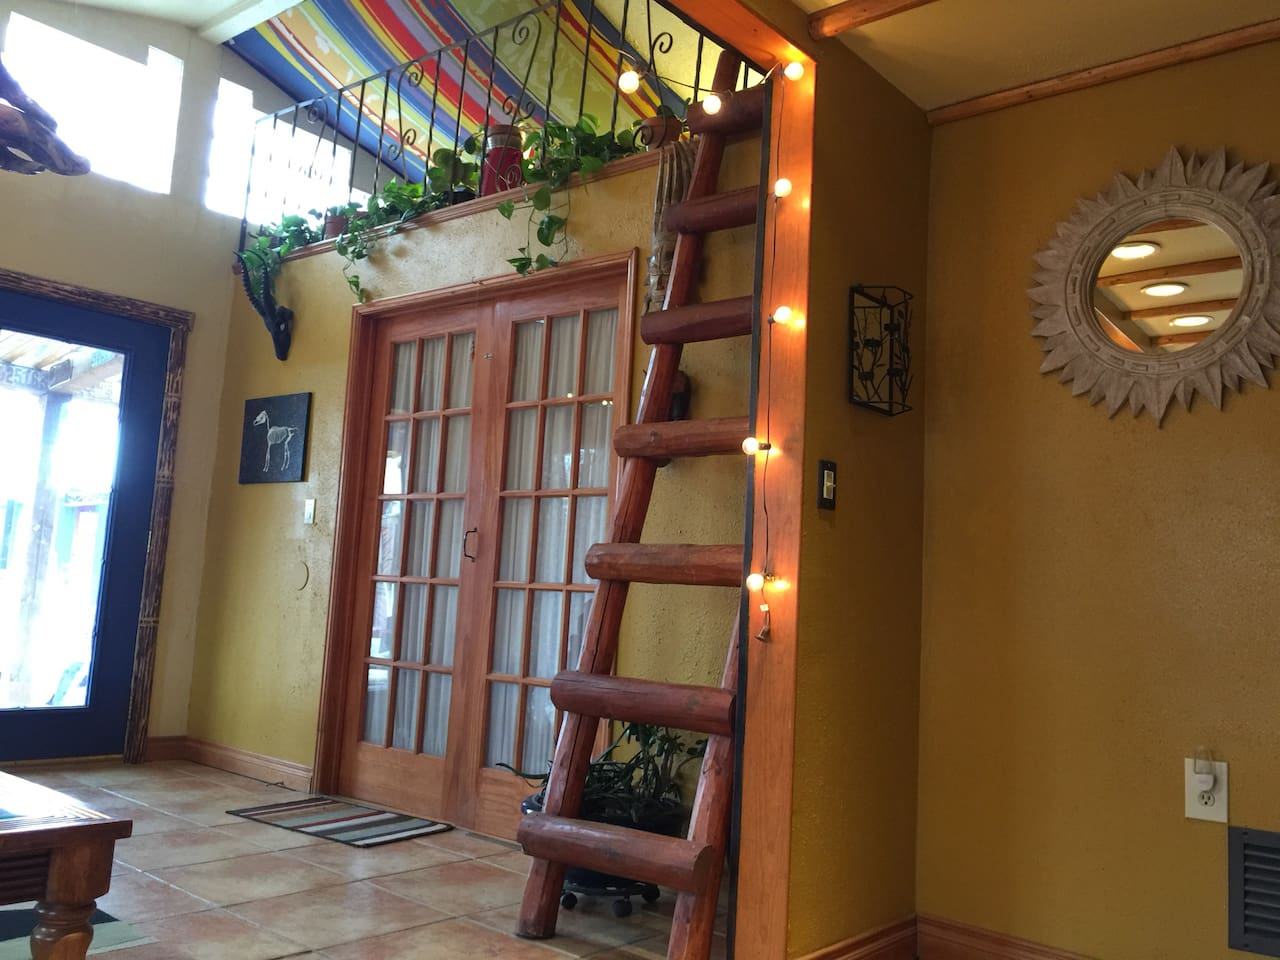 The blue door leads to the back yard area, west side, where you will want to hang out and watch our awesome sunsets! The ladder leads to a more or less decorative loft, which plants love to live in.